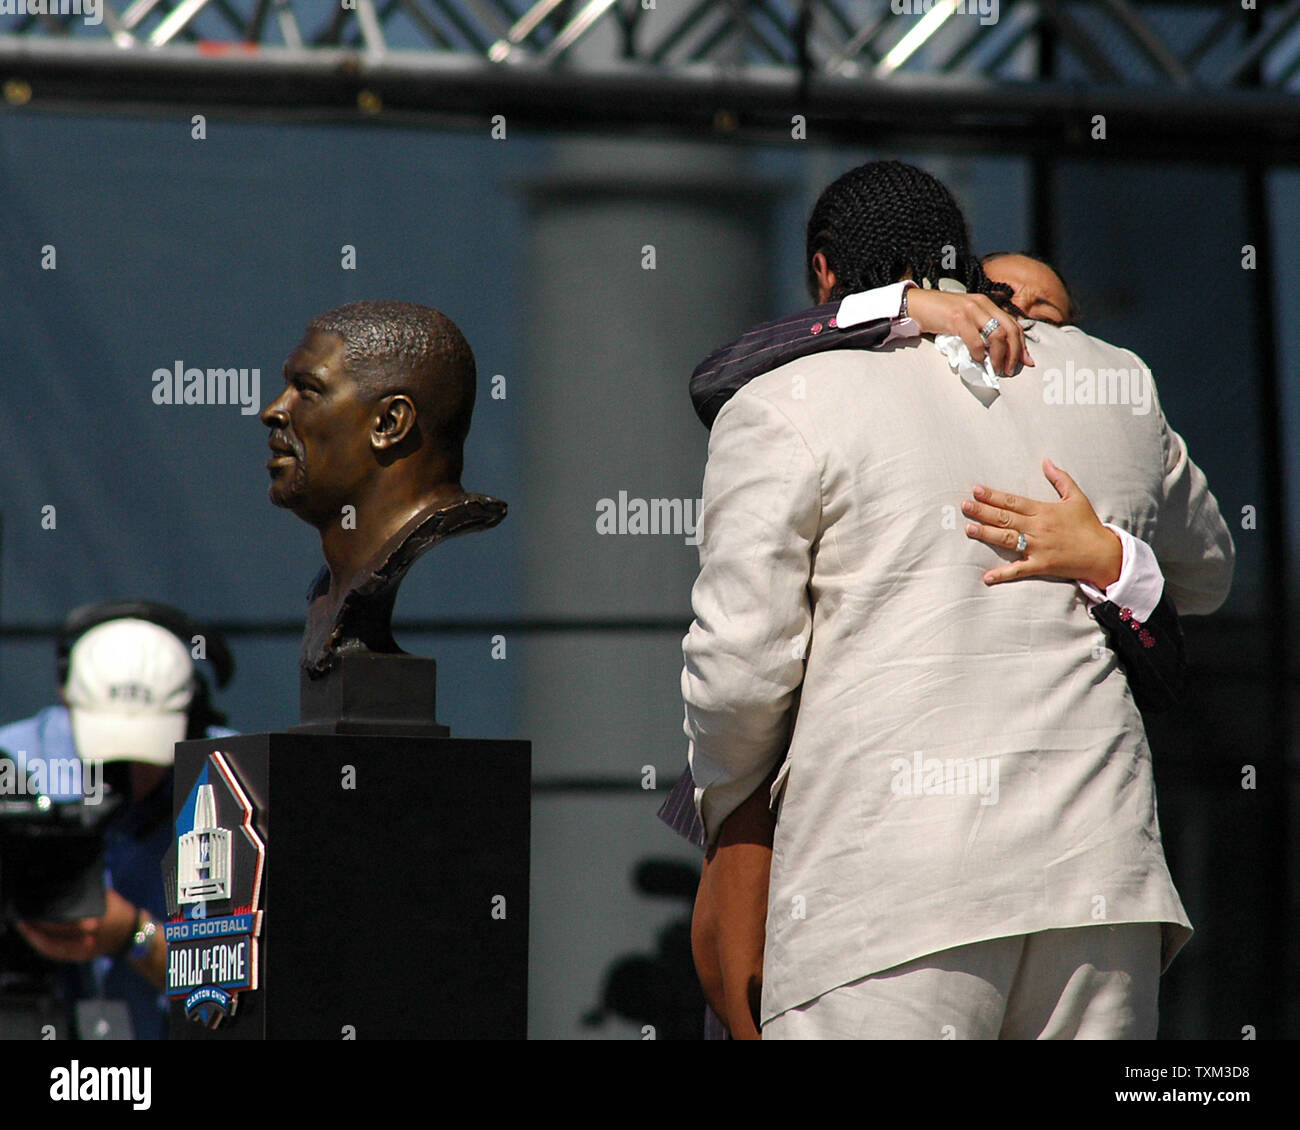 Sara and Jeremy White have a tearful embrace after unveiling the bust of husband and father Reggie White at the enshrinement ceremony at the Football Hall of Fame on August 5, 2006 in Canton, Ohio. (UPI Photo/Stephanie Krell) - Stock Image